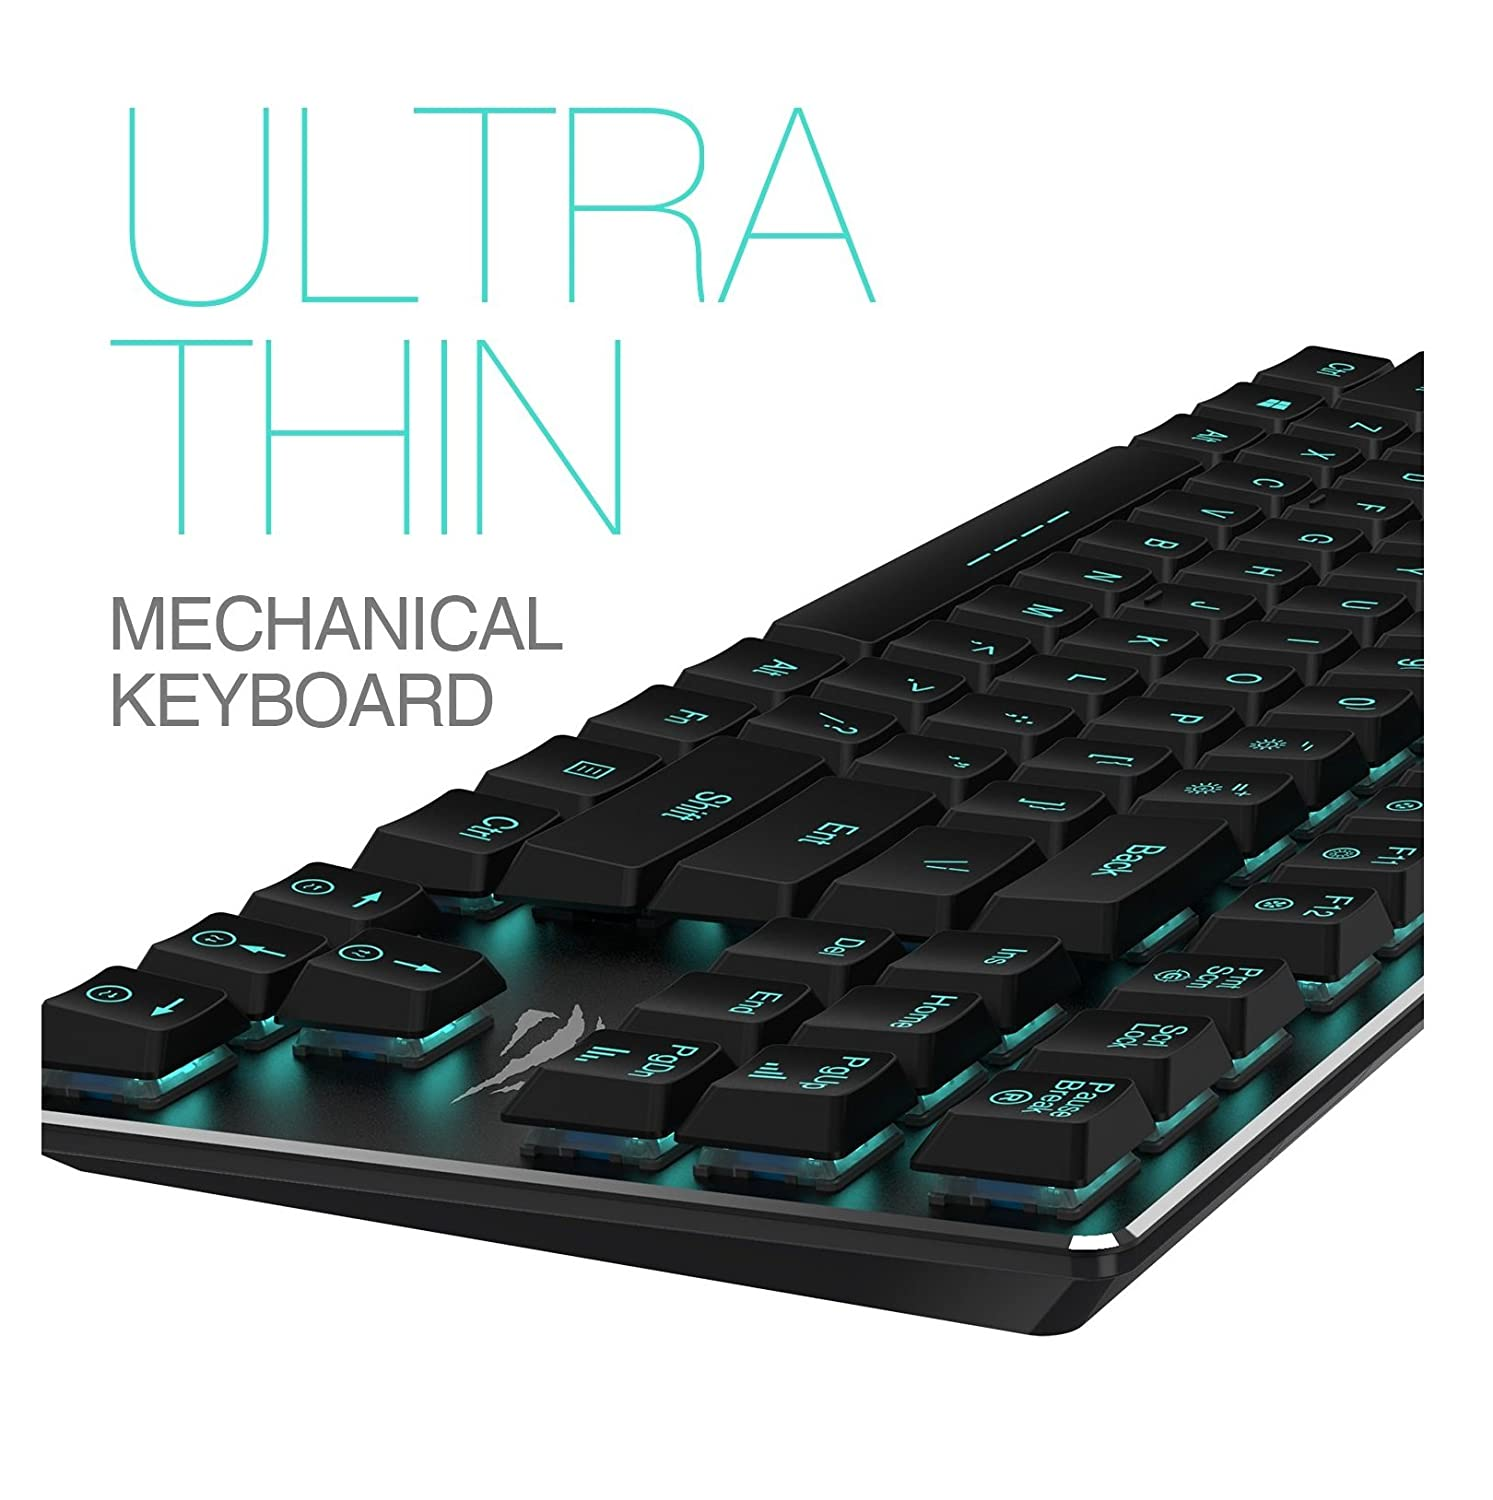 Amazon mechanical keyboard - Amazon Com Mechanical Keyboard Havit Backlit Wired Gaming Keyboard Extra Thin Light Kailh Latest Low Profile Blue Switches 87 Keys N Key Rollover